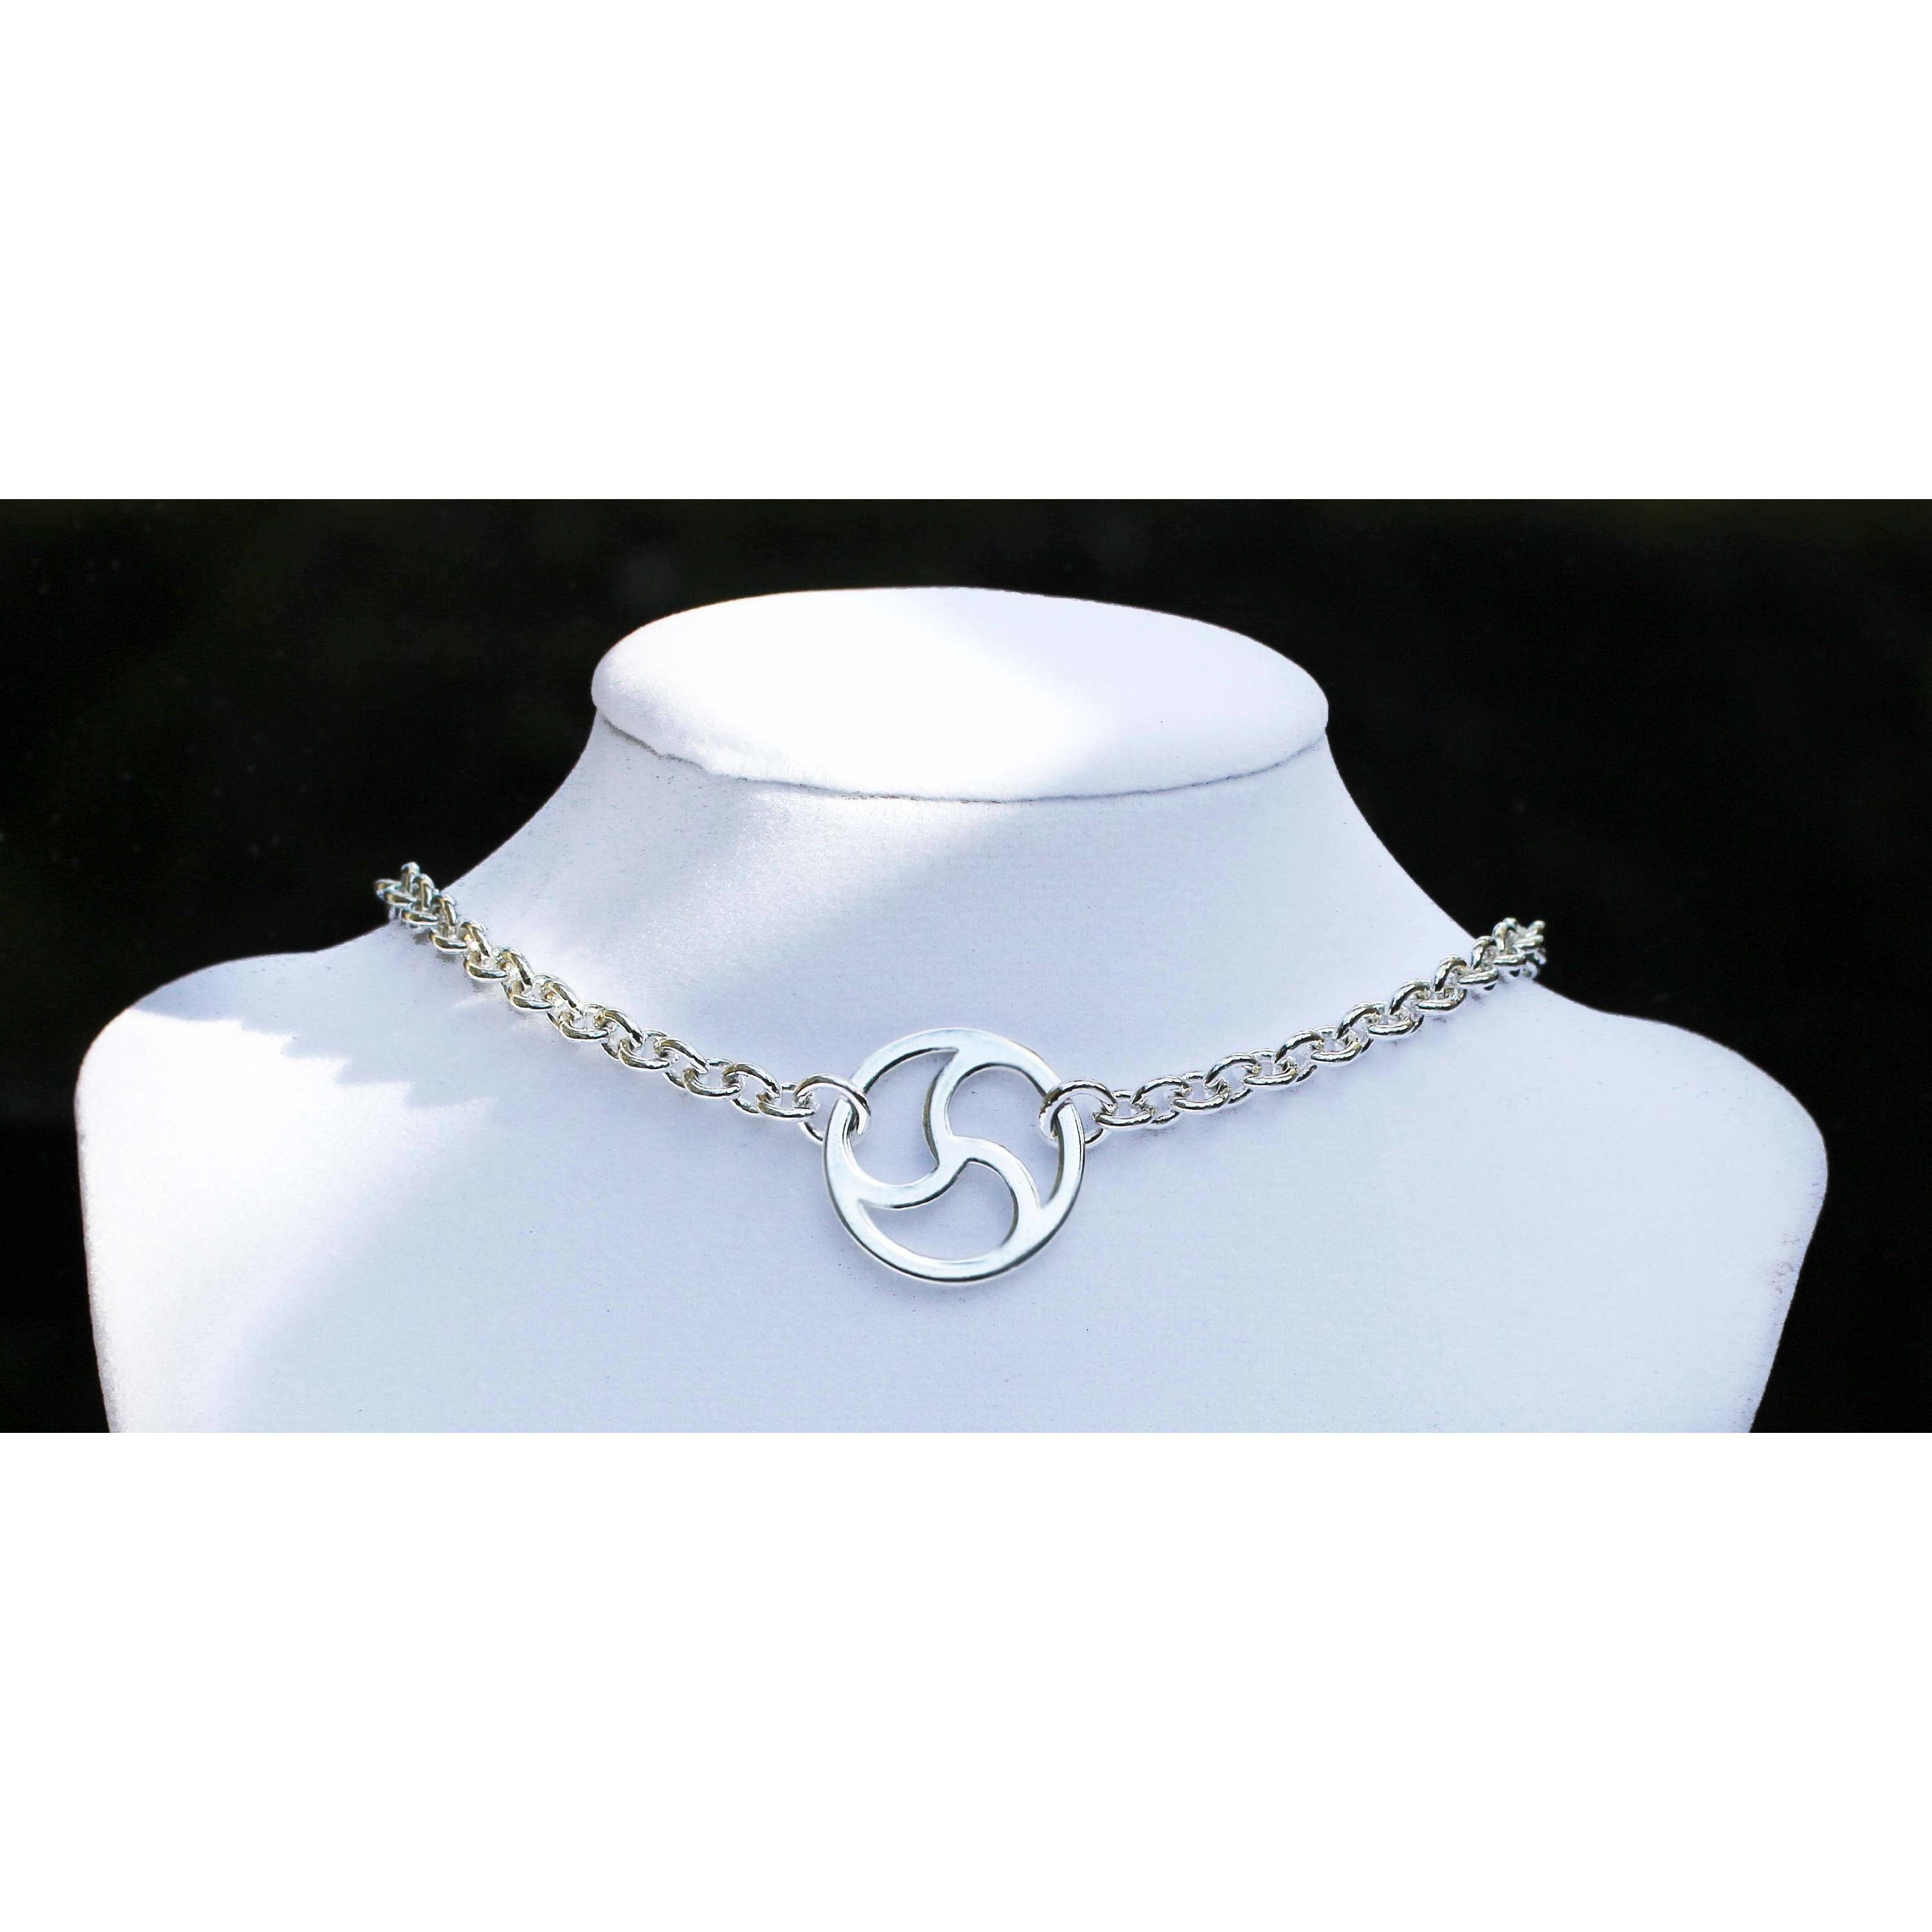 Sterling Silver, Discreet Day Collar, BDSM Symbol,, Heavy Chain, Choker Style, Handmade , boxed and gift wrapped